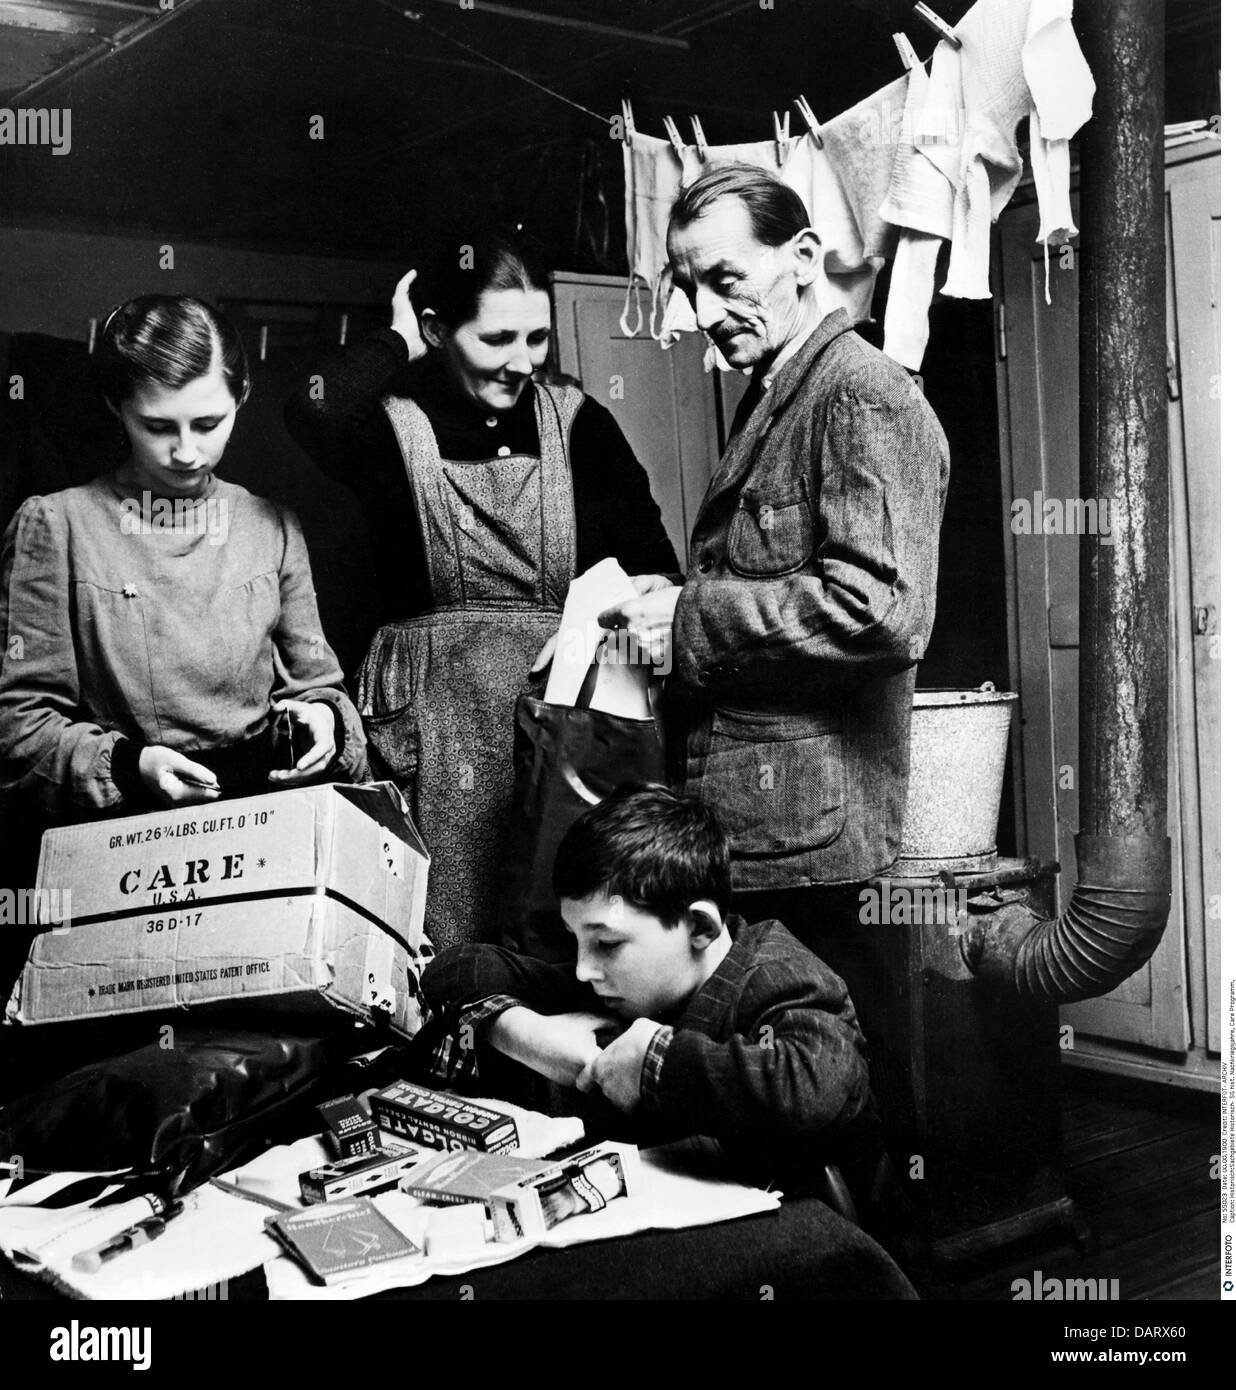 postwar period, CARE programme, German family unpacking a CARE Package, circa 1949, Additional-Rights-Clearences - Stock Image